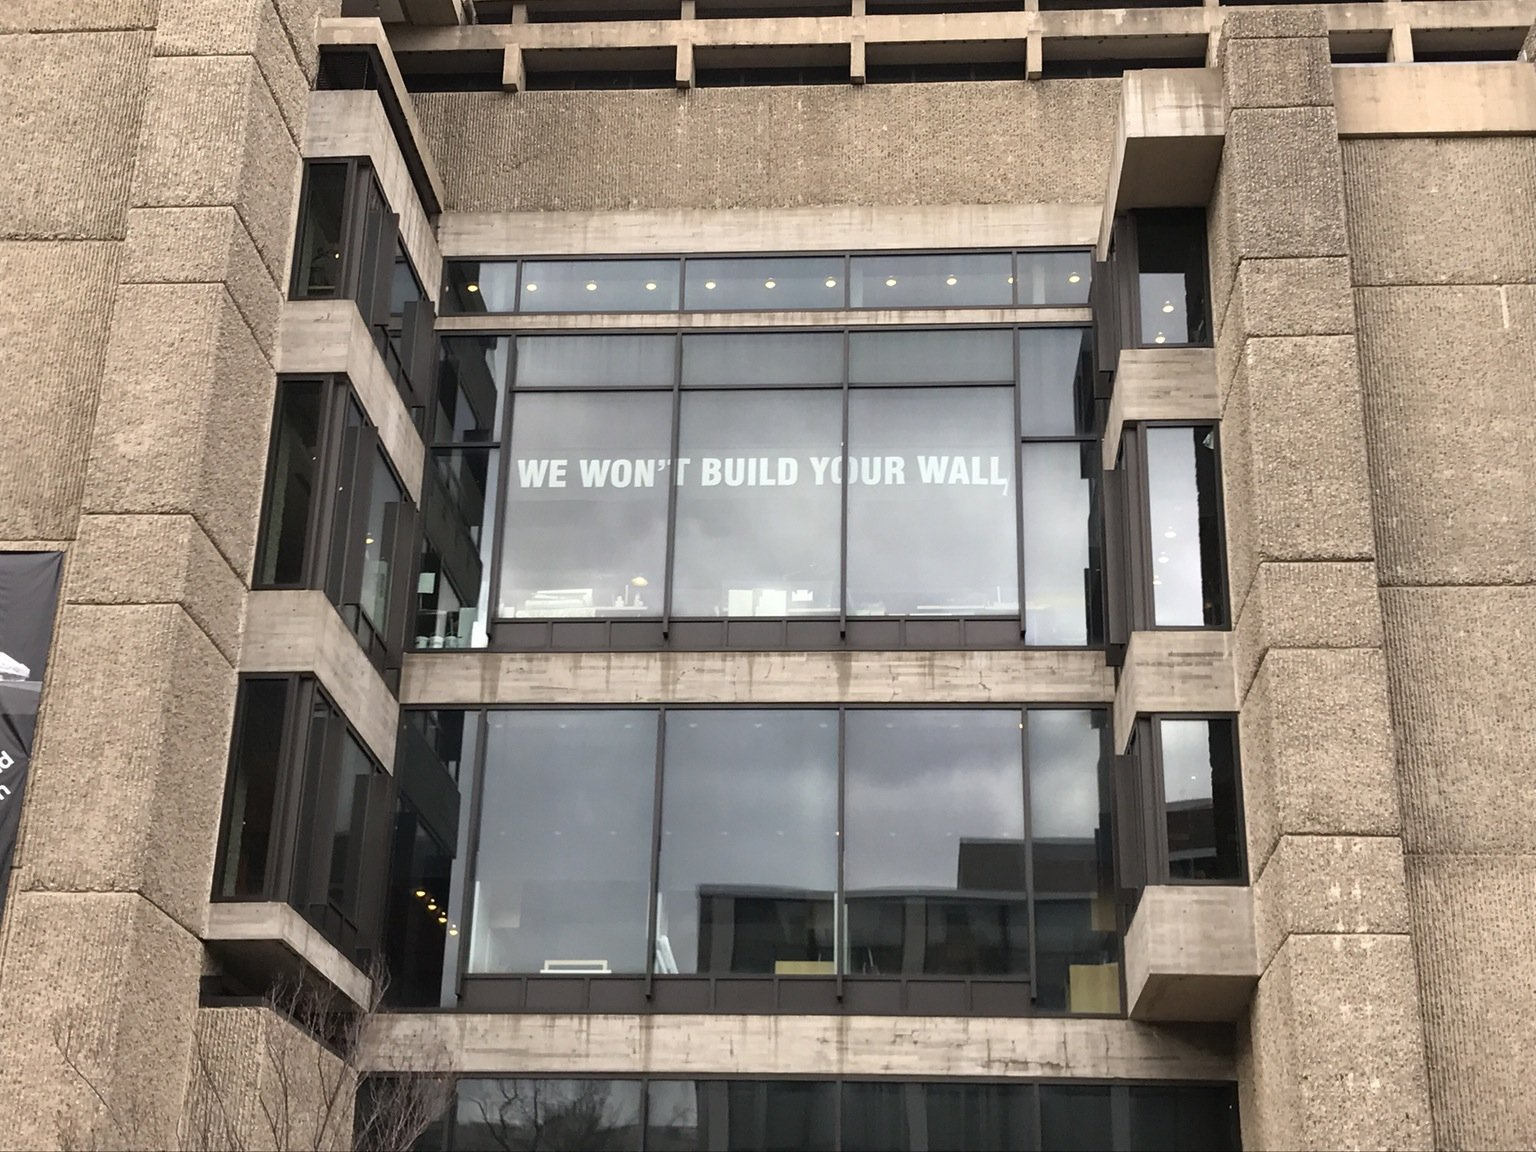 Yale School of Architecture with a message for Trump - Trending on